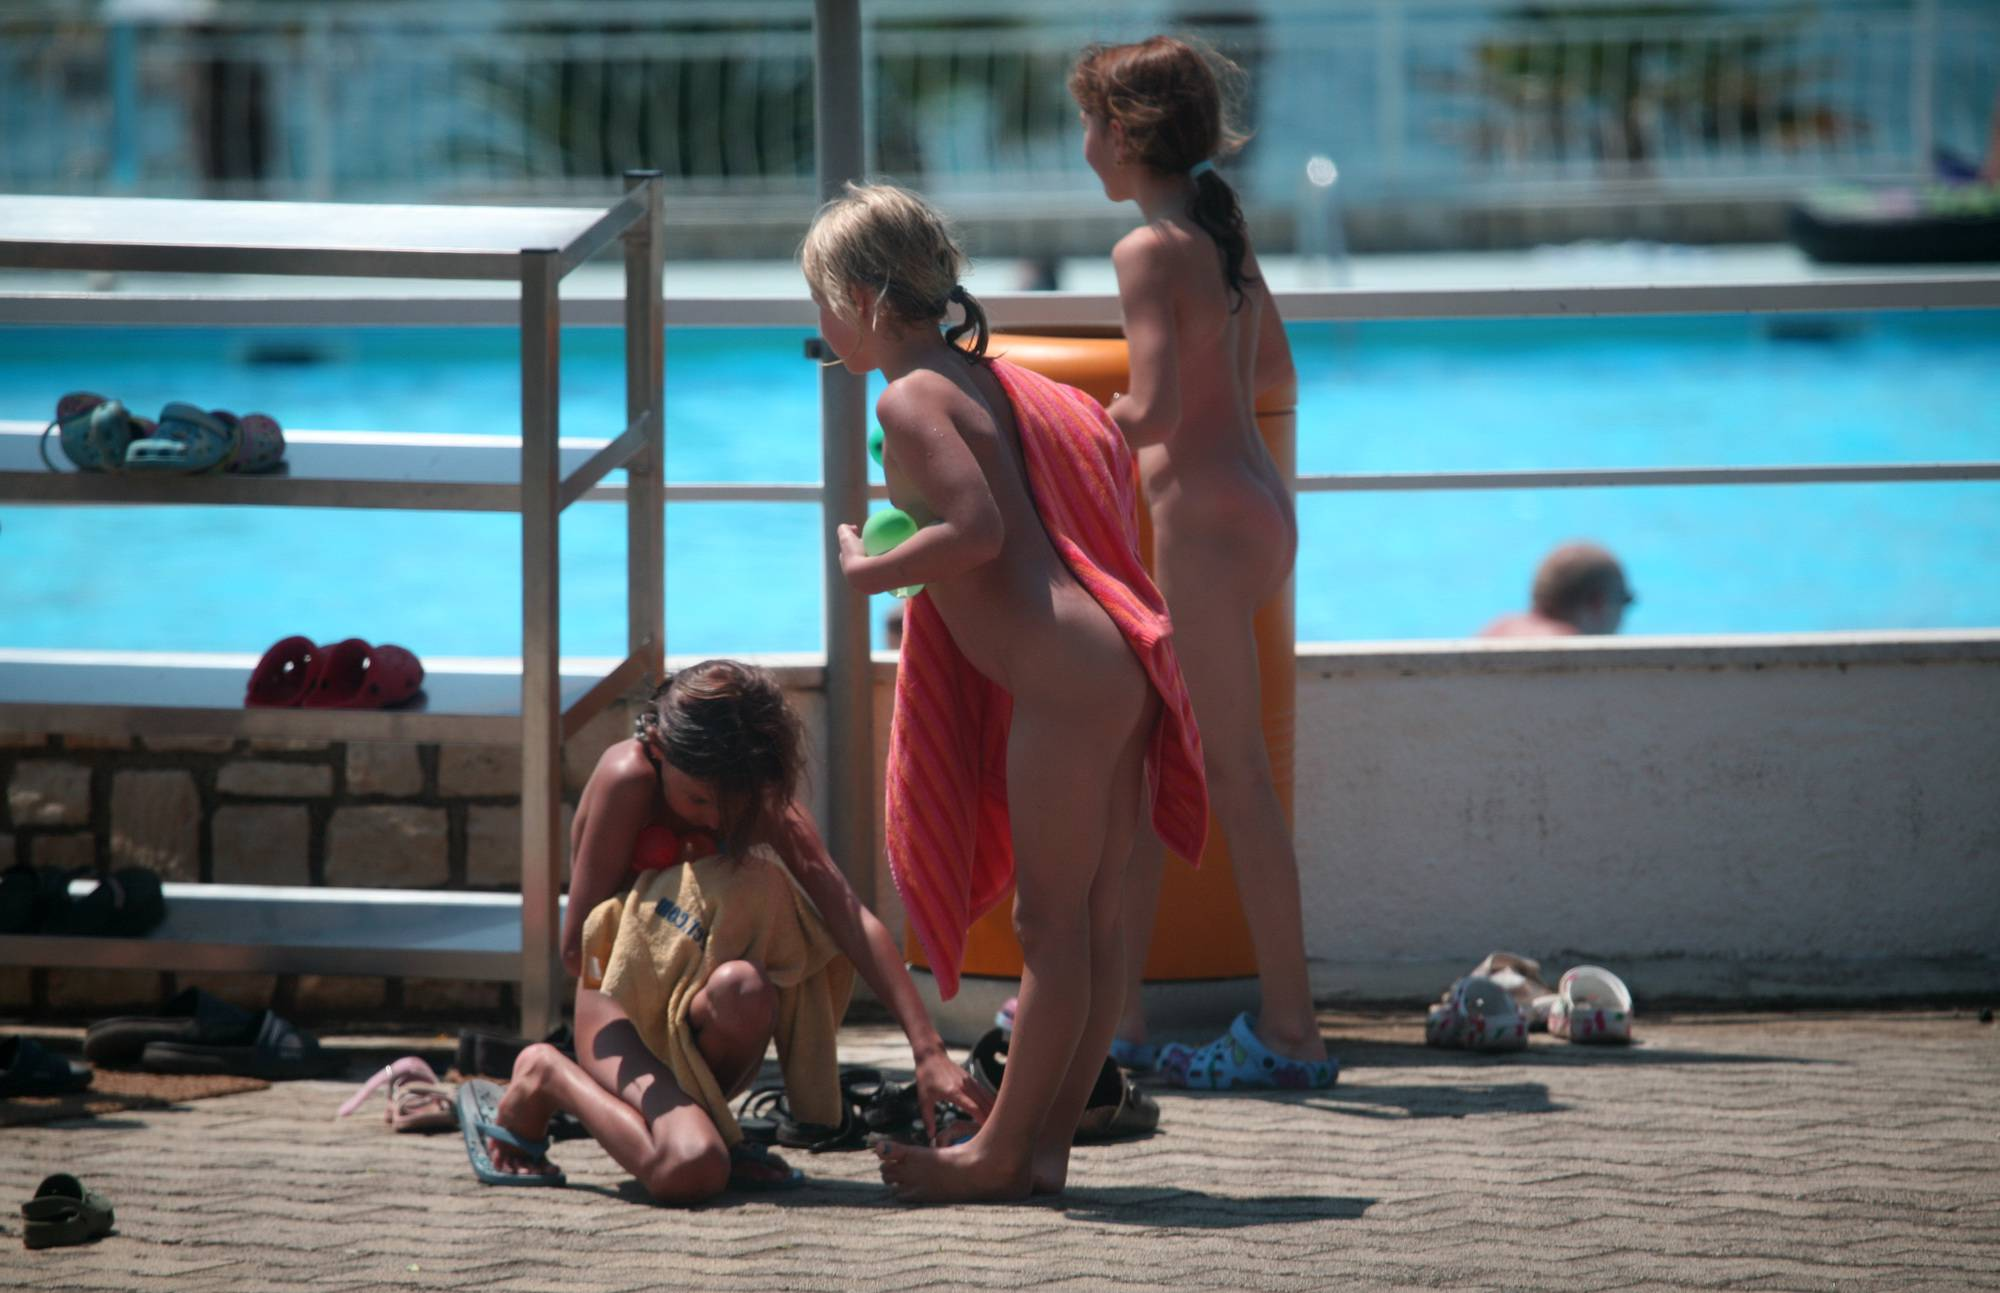 Pure Nudism Photos-Group Huddle By The Pool - 1